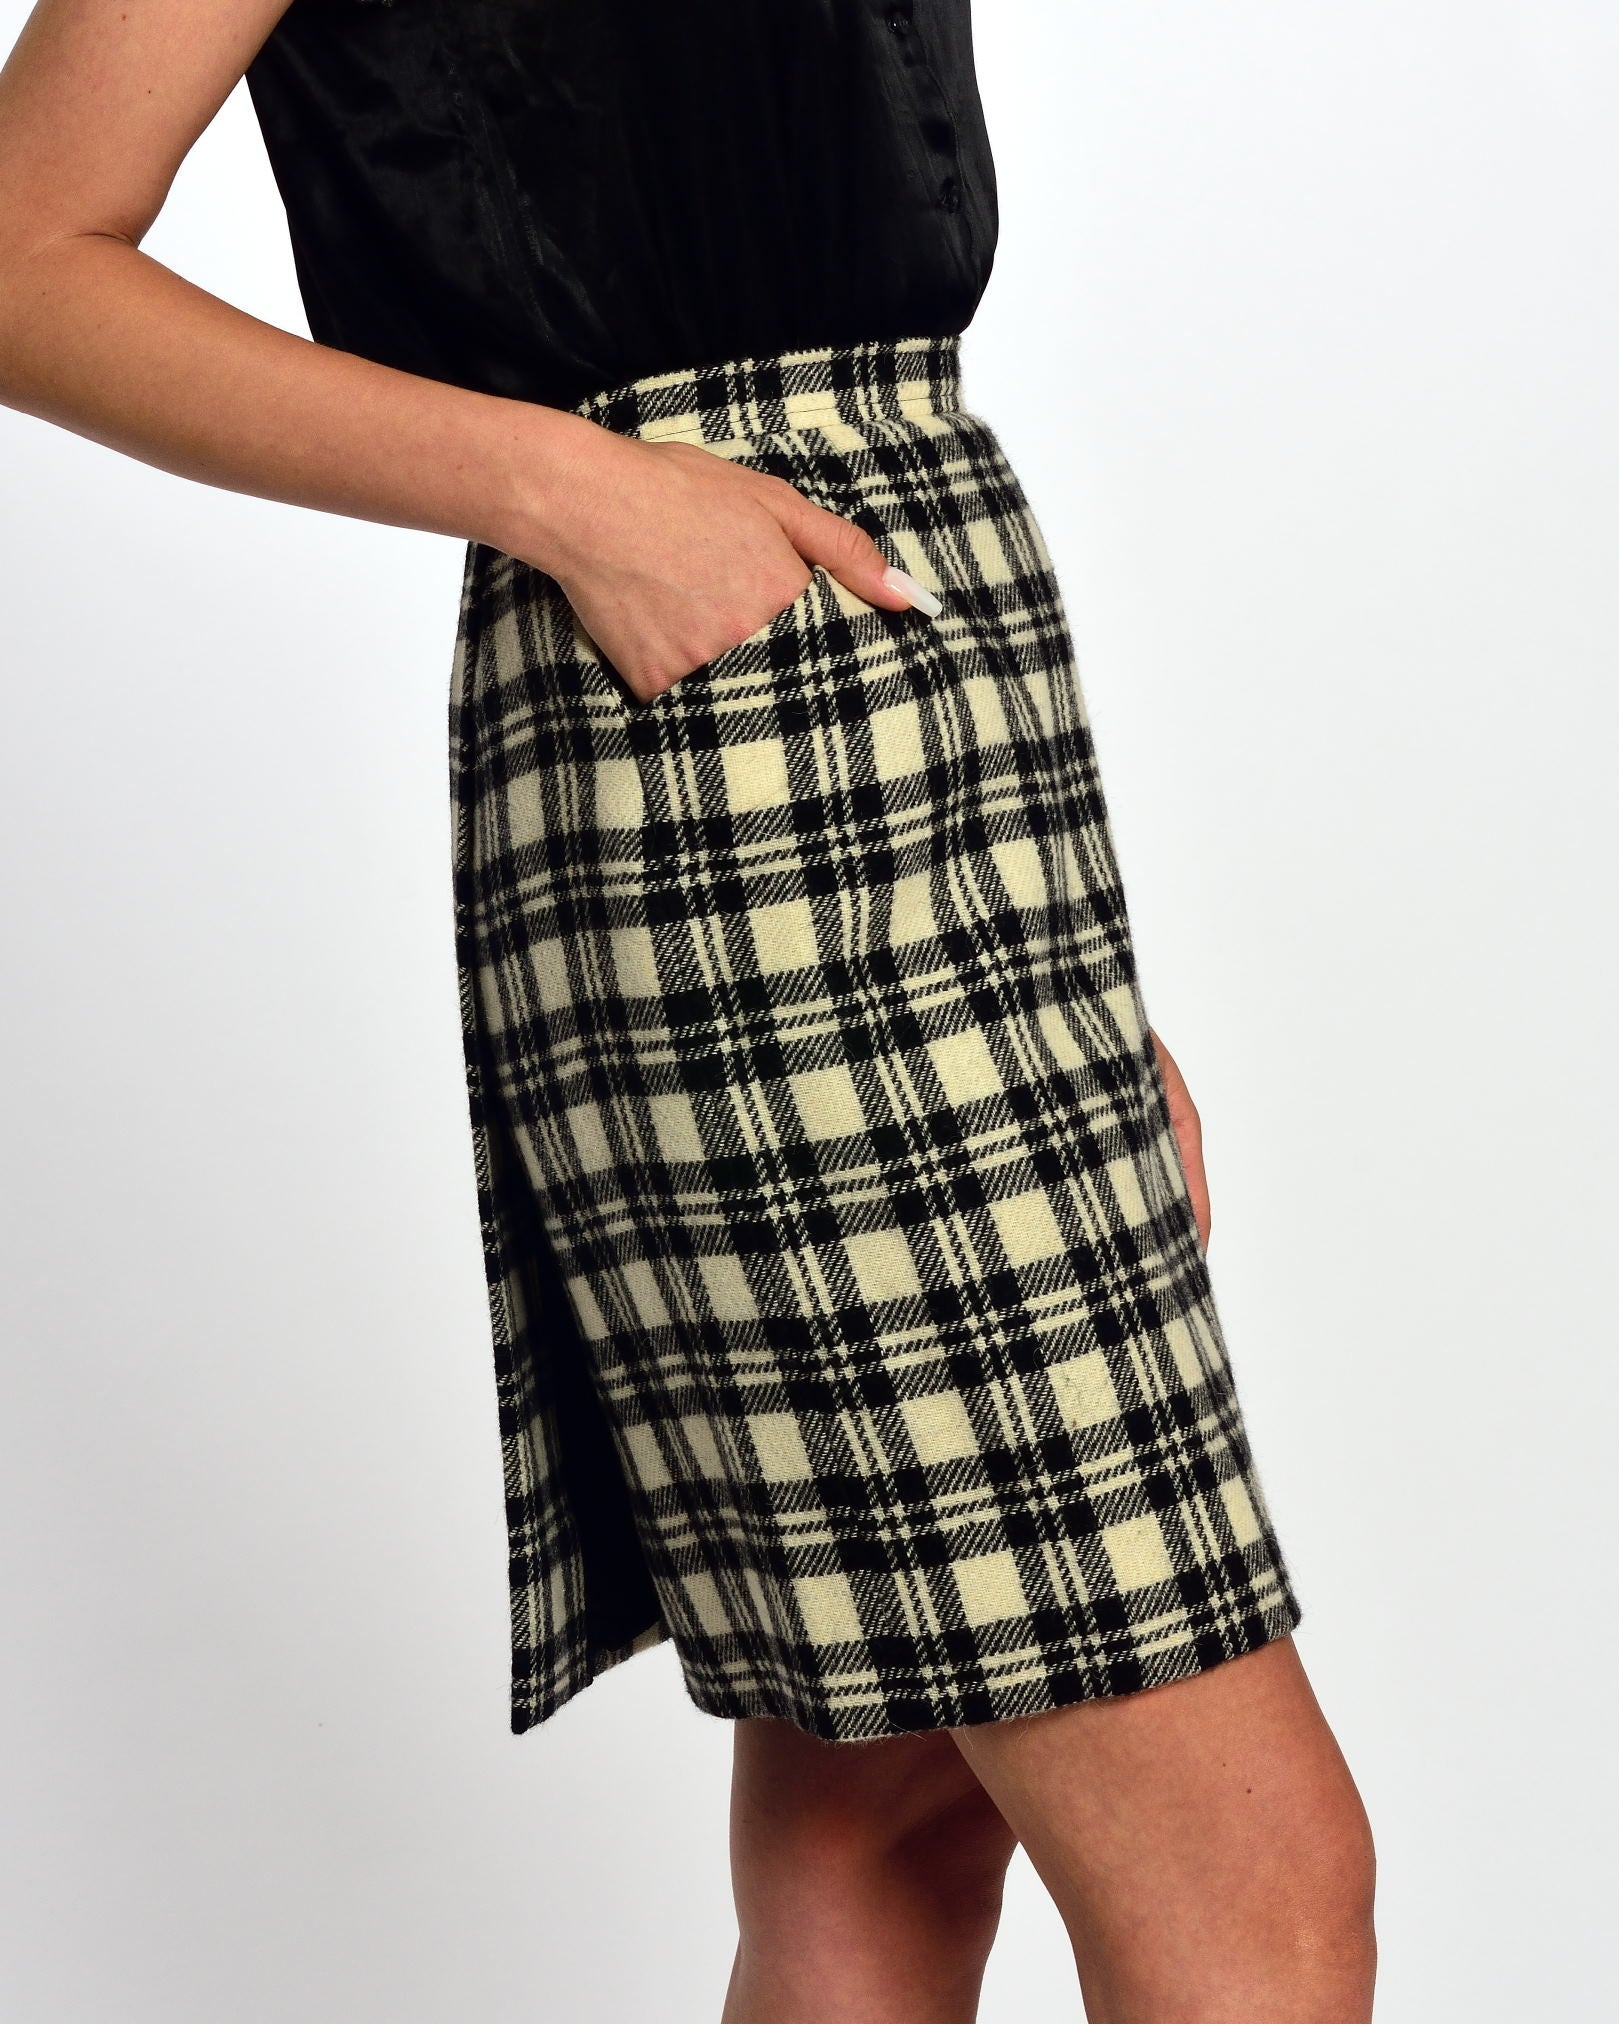 Black and White Tartan Tailleur